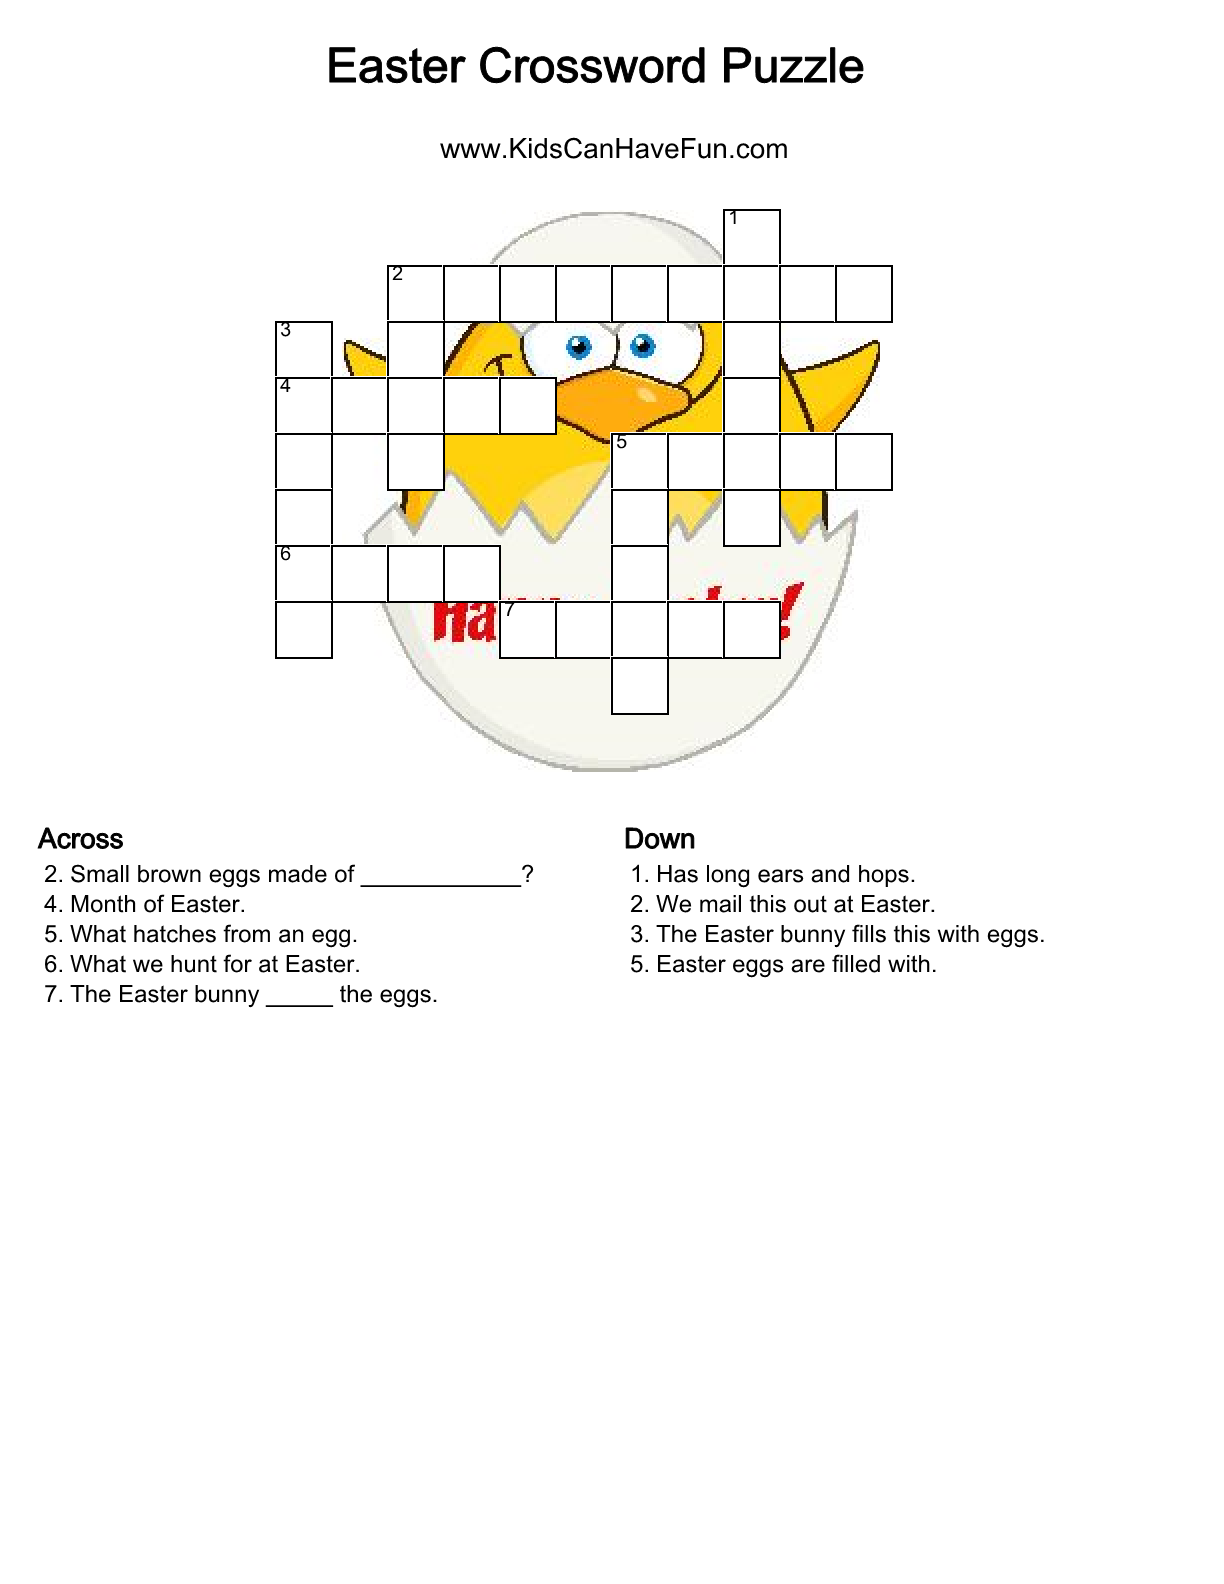 Easter Crossword Puzzle Dscanhavefun